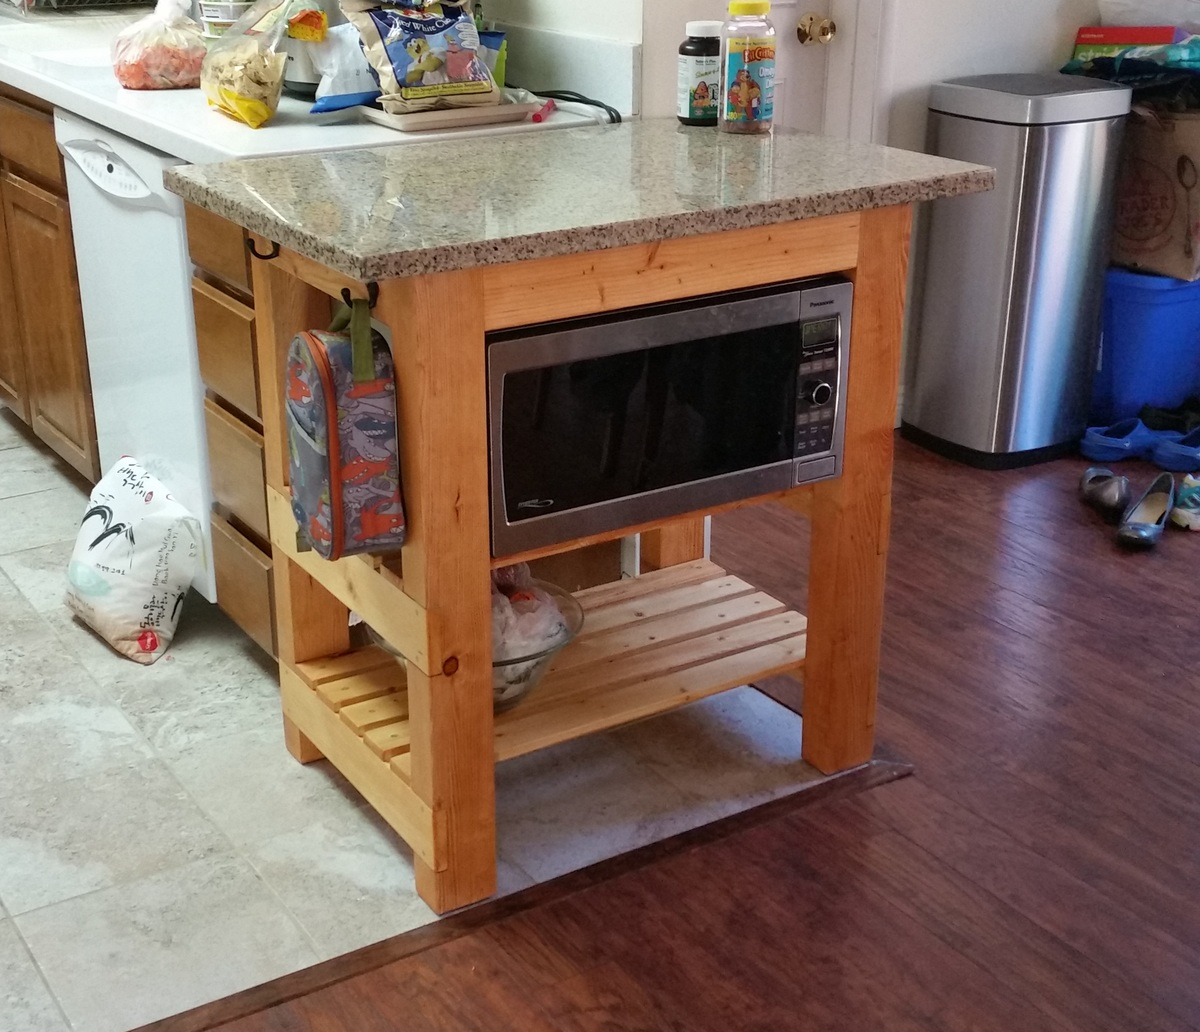 Build Michaela S Kitchen Island Diy Projects: Granite Top Kitchen Island - DIY Projects